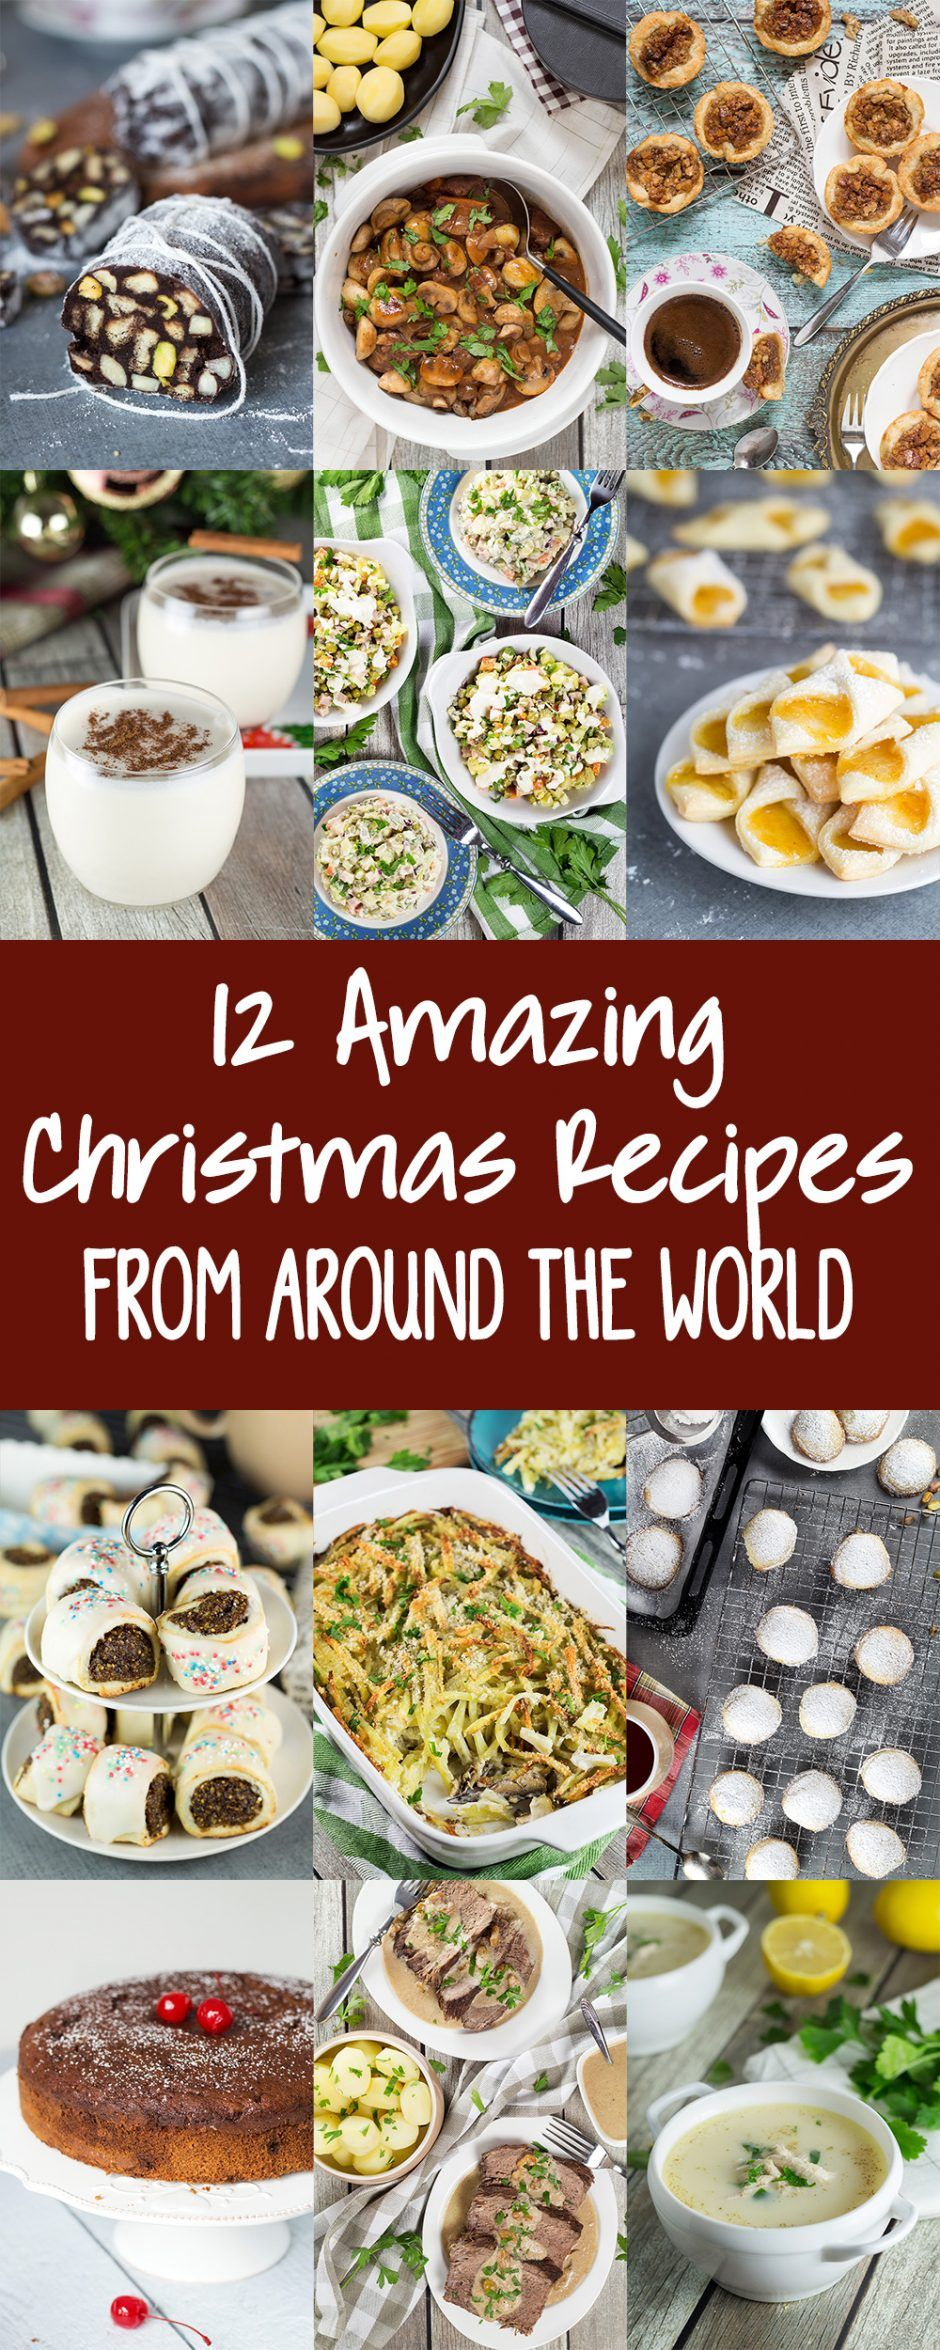 12 Amazing Christmas Recipes From Around The World